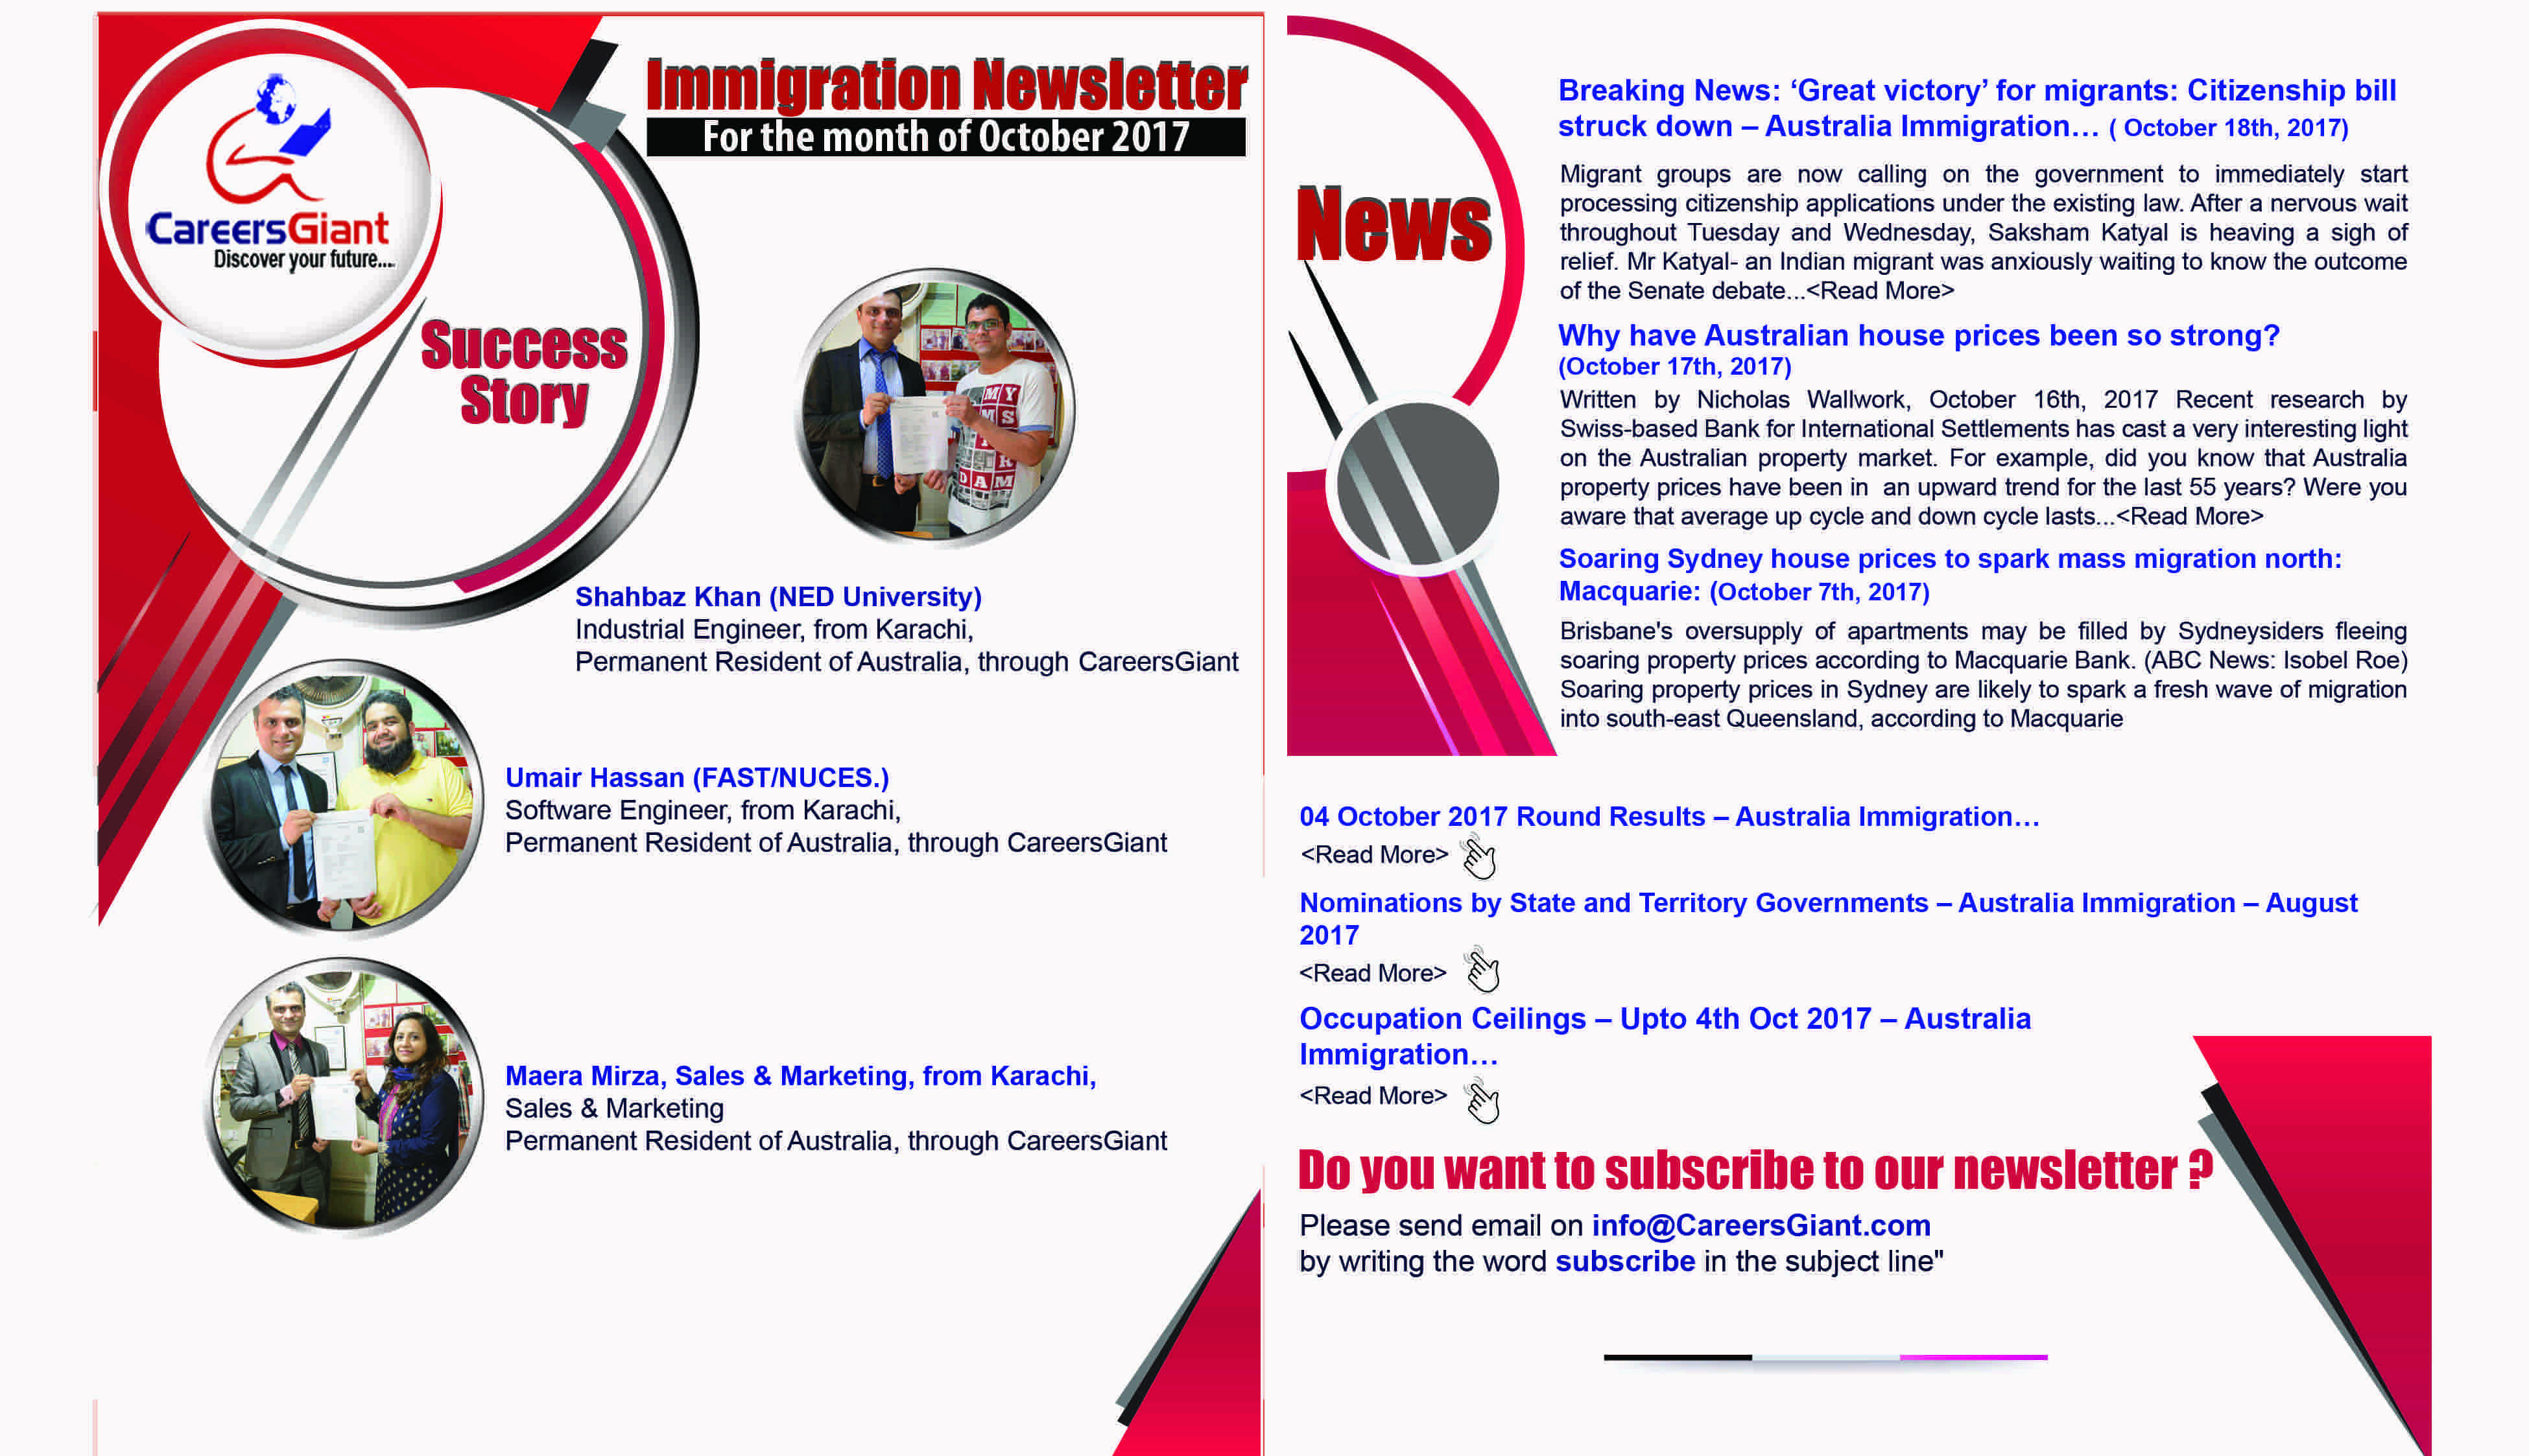 Immigration News letter-by CareersGiant - Oct 2017